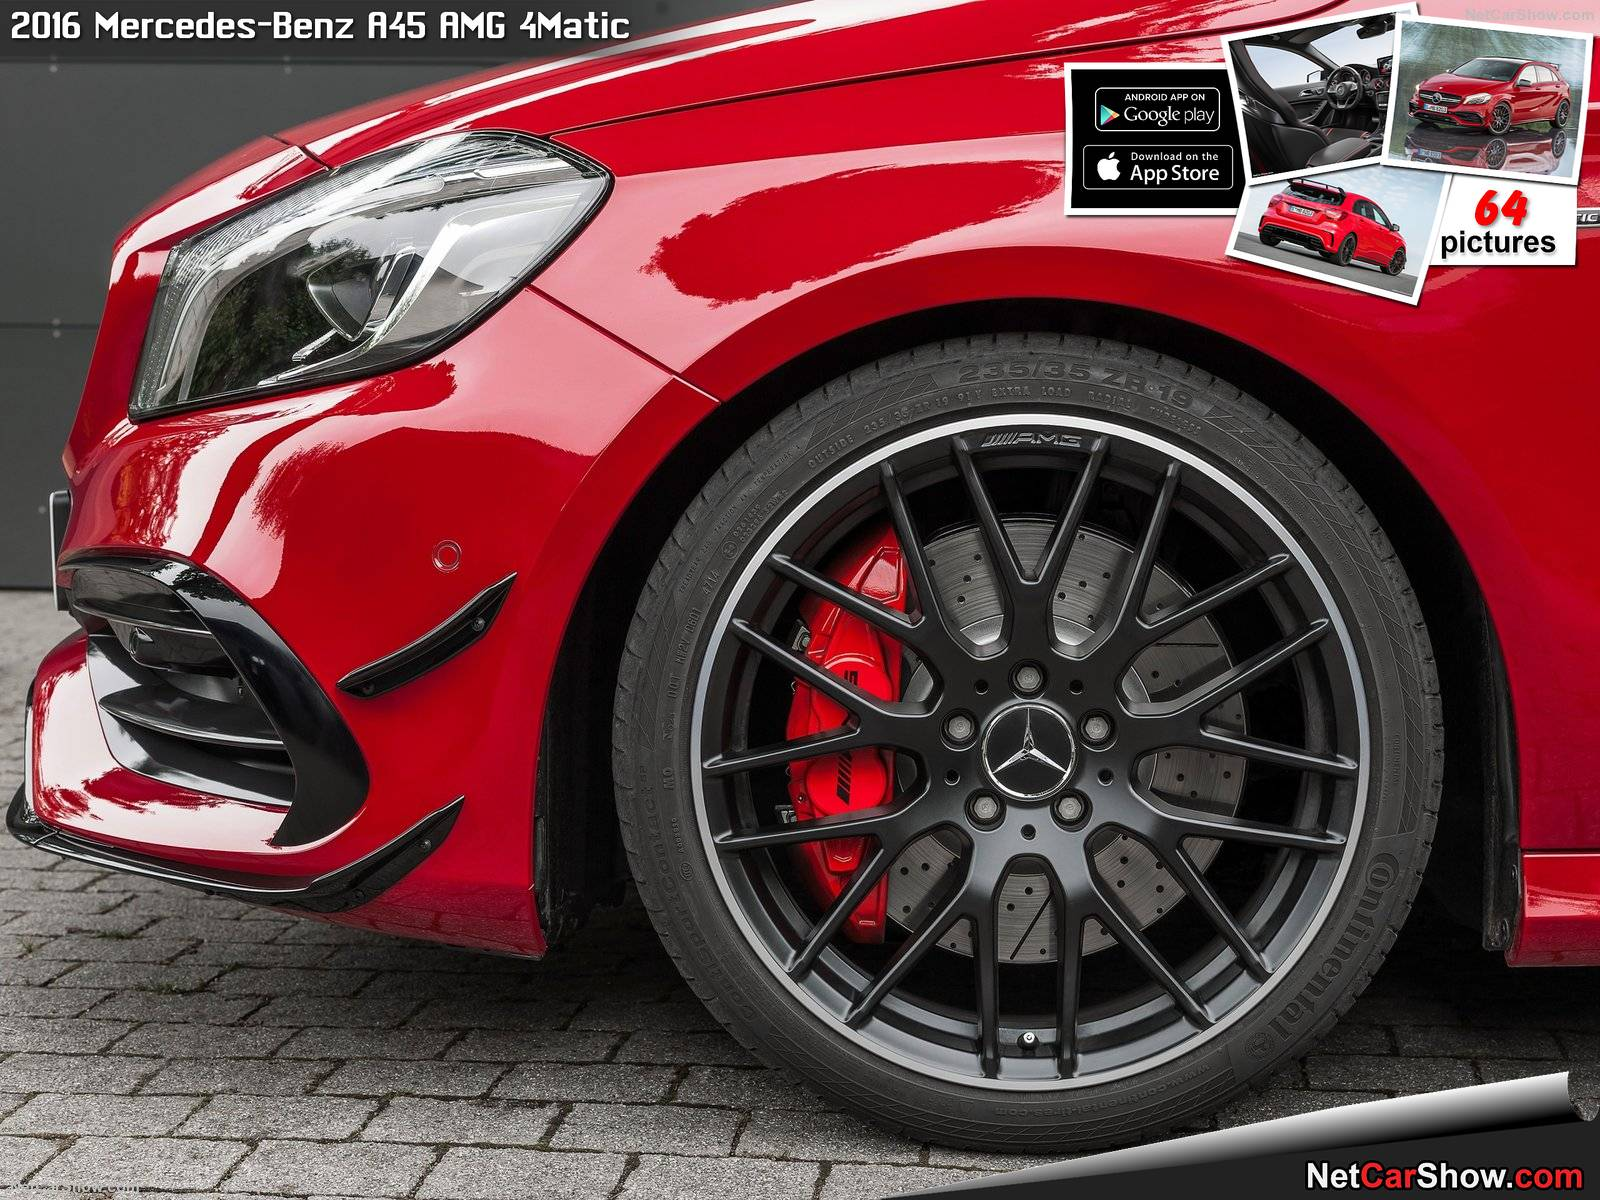 Which mb rim is the best for Mercedes benz amg rims for sale